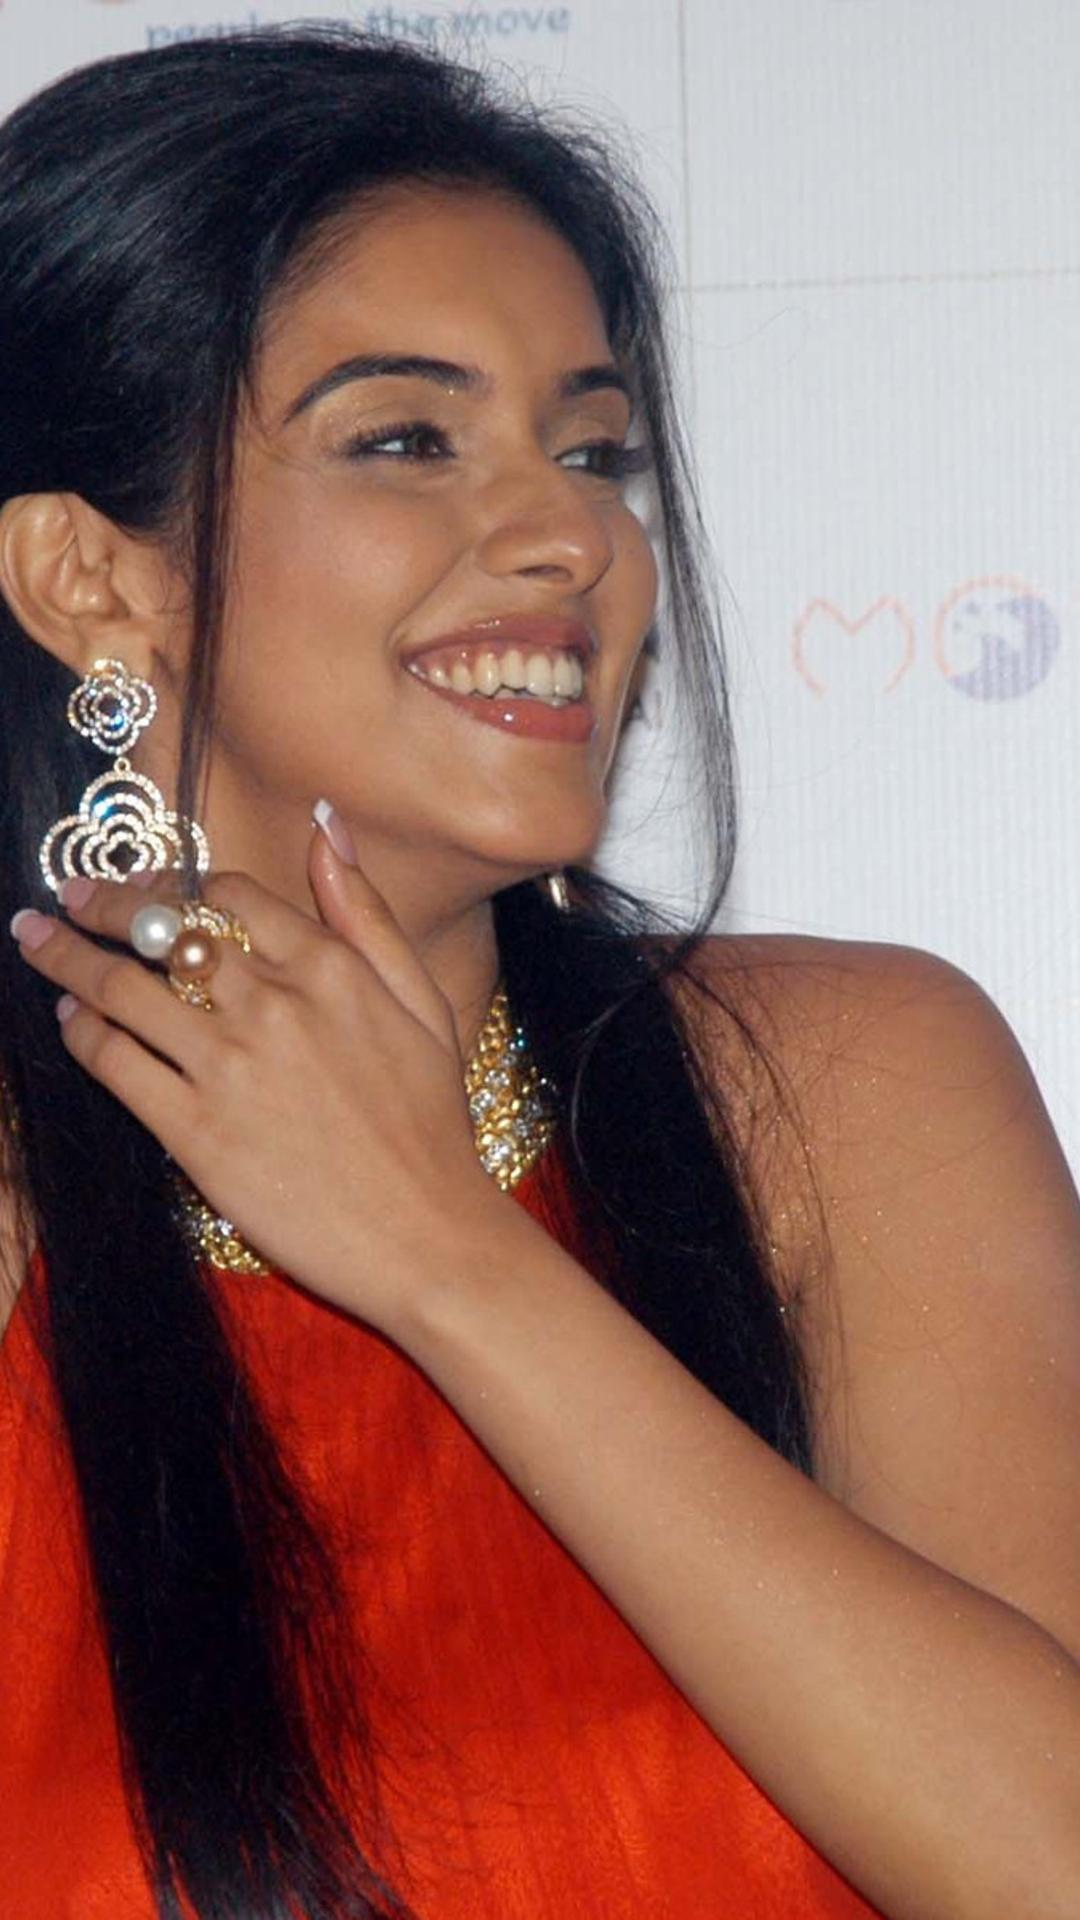 beautiful actress, asin thottumkal with a smile on her face